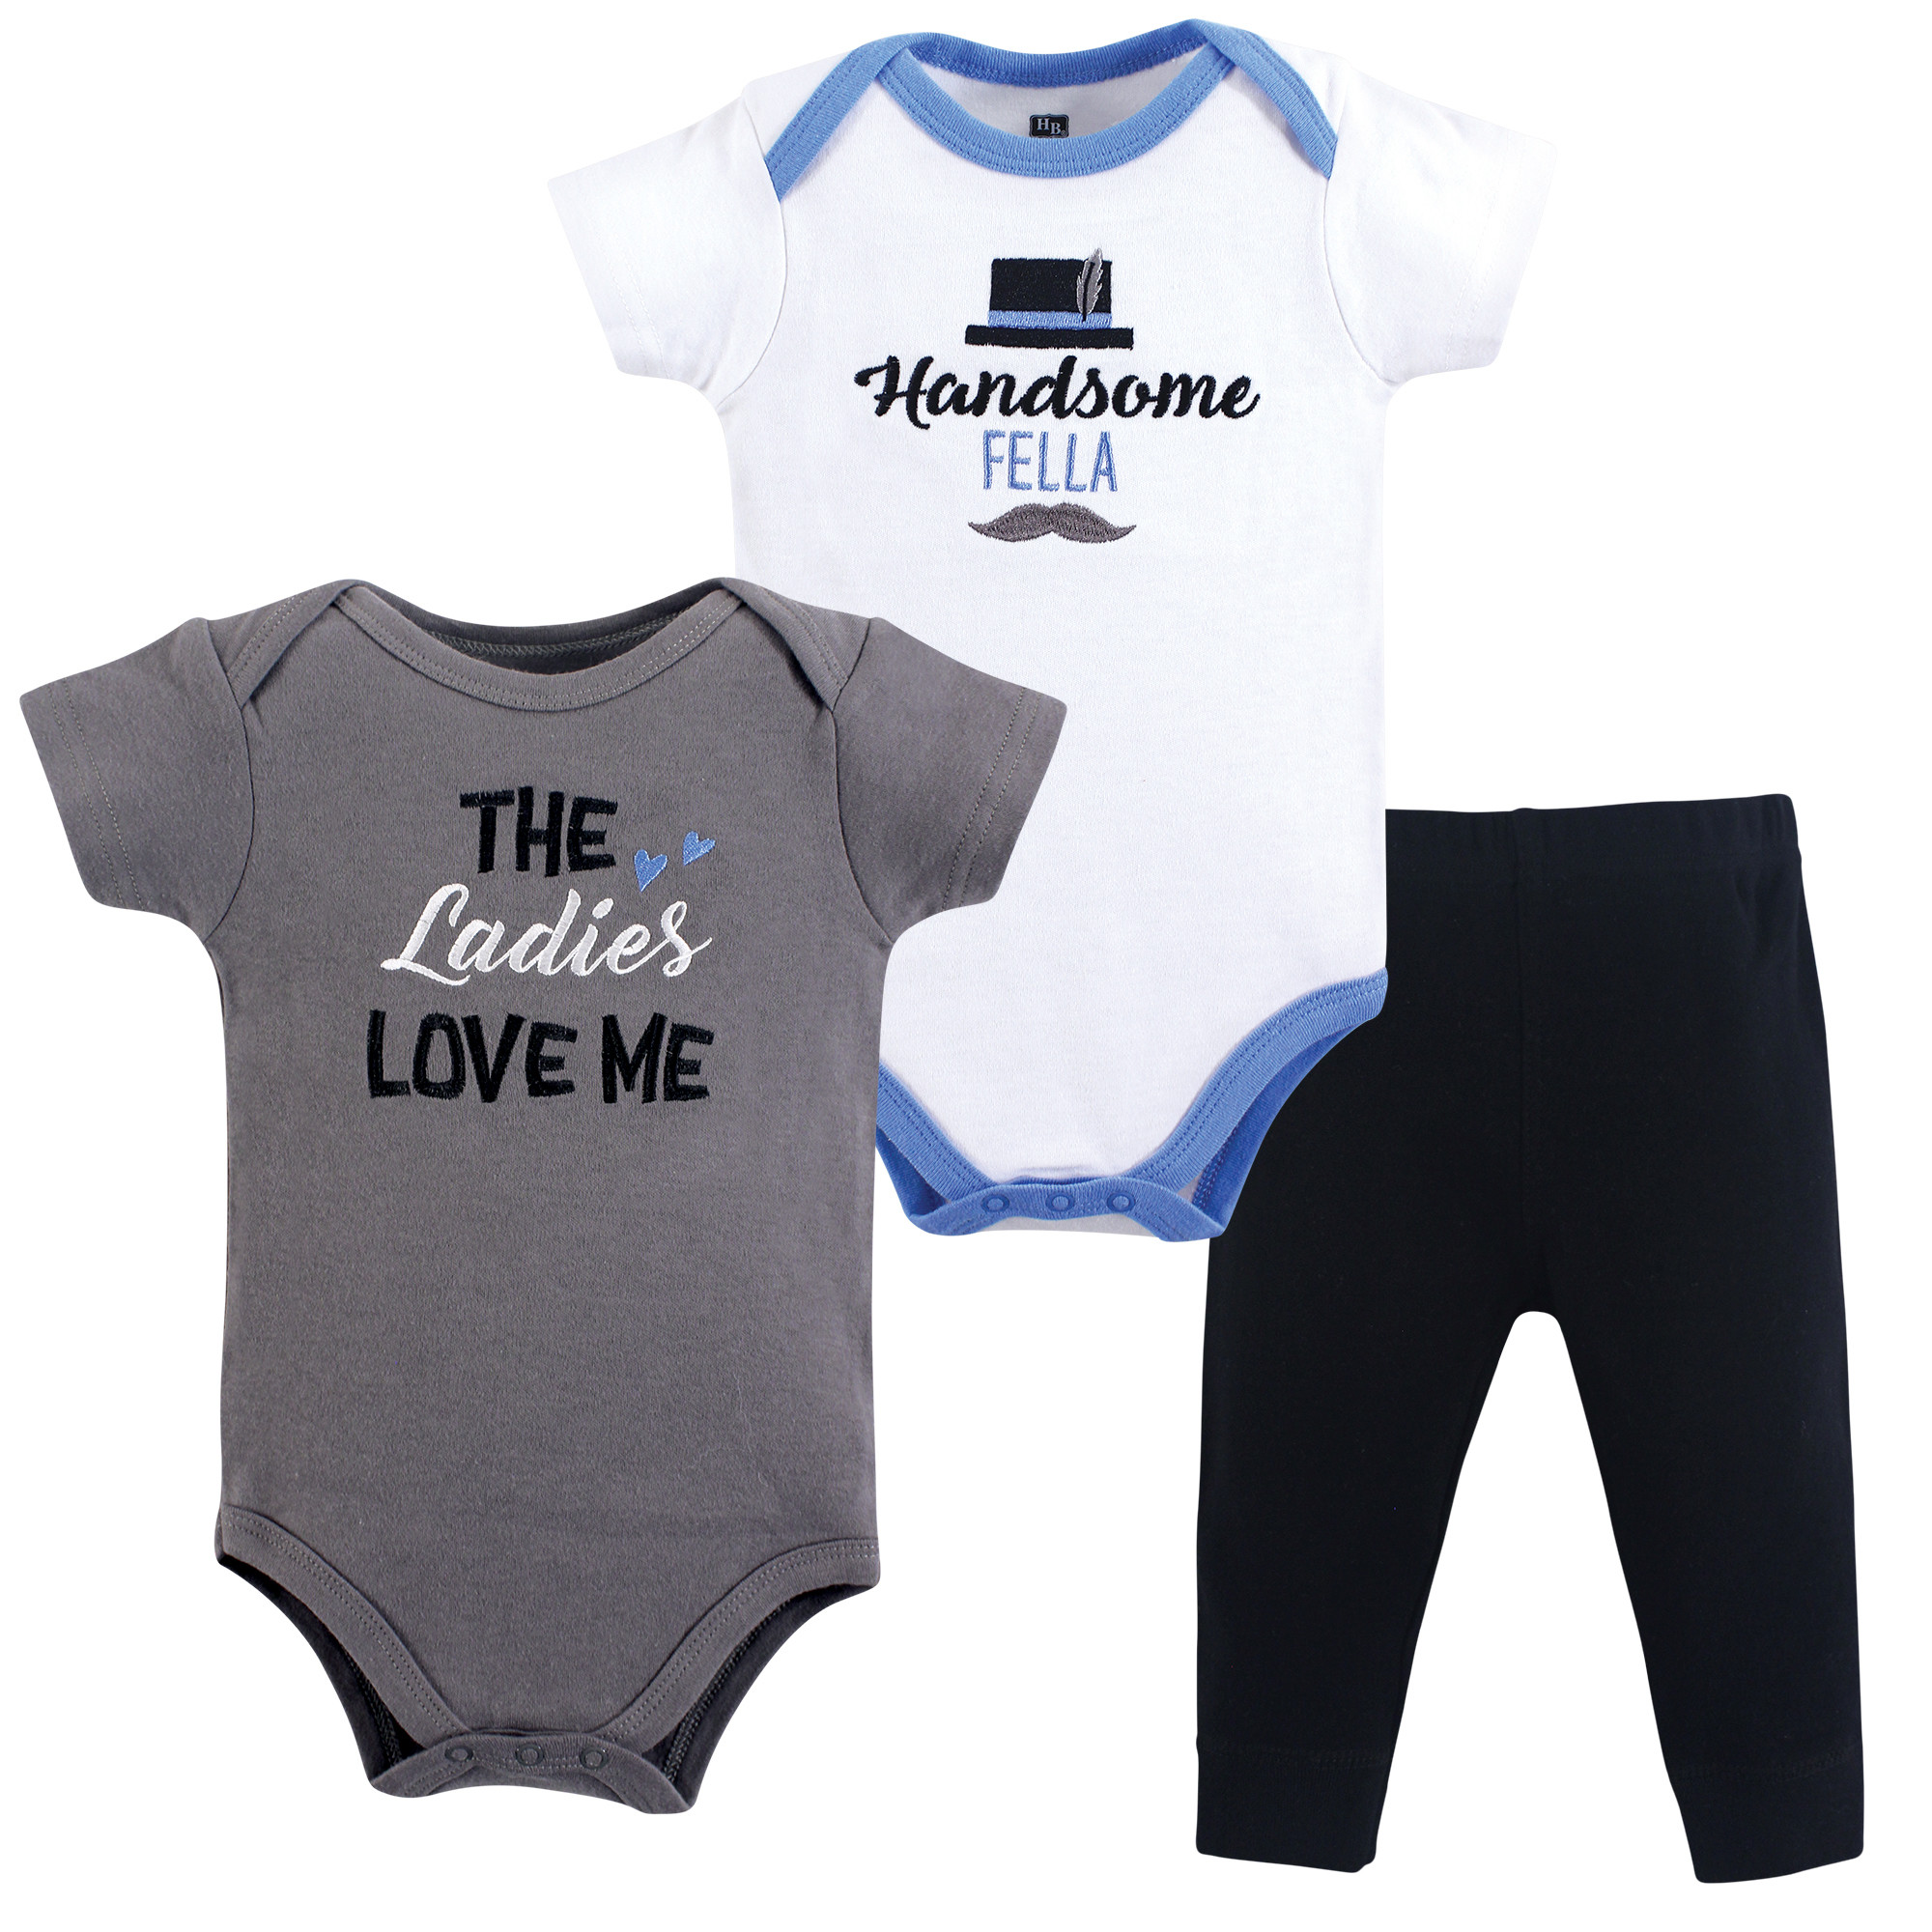 ed9092710 ... quality cute baby clothing features 100% premium cotton for the softest  touch on your baby's gentle skin. This short sleeve and long sleeve bodysuit  ...